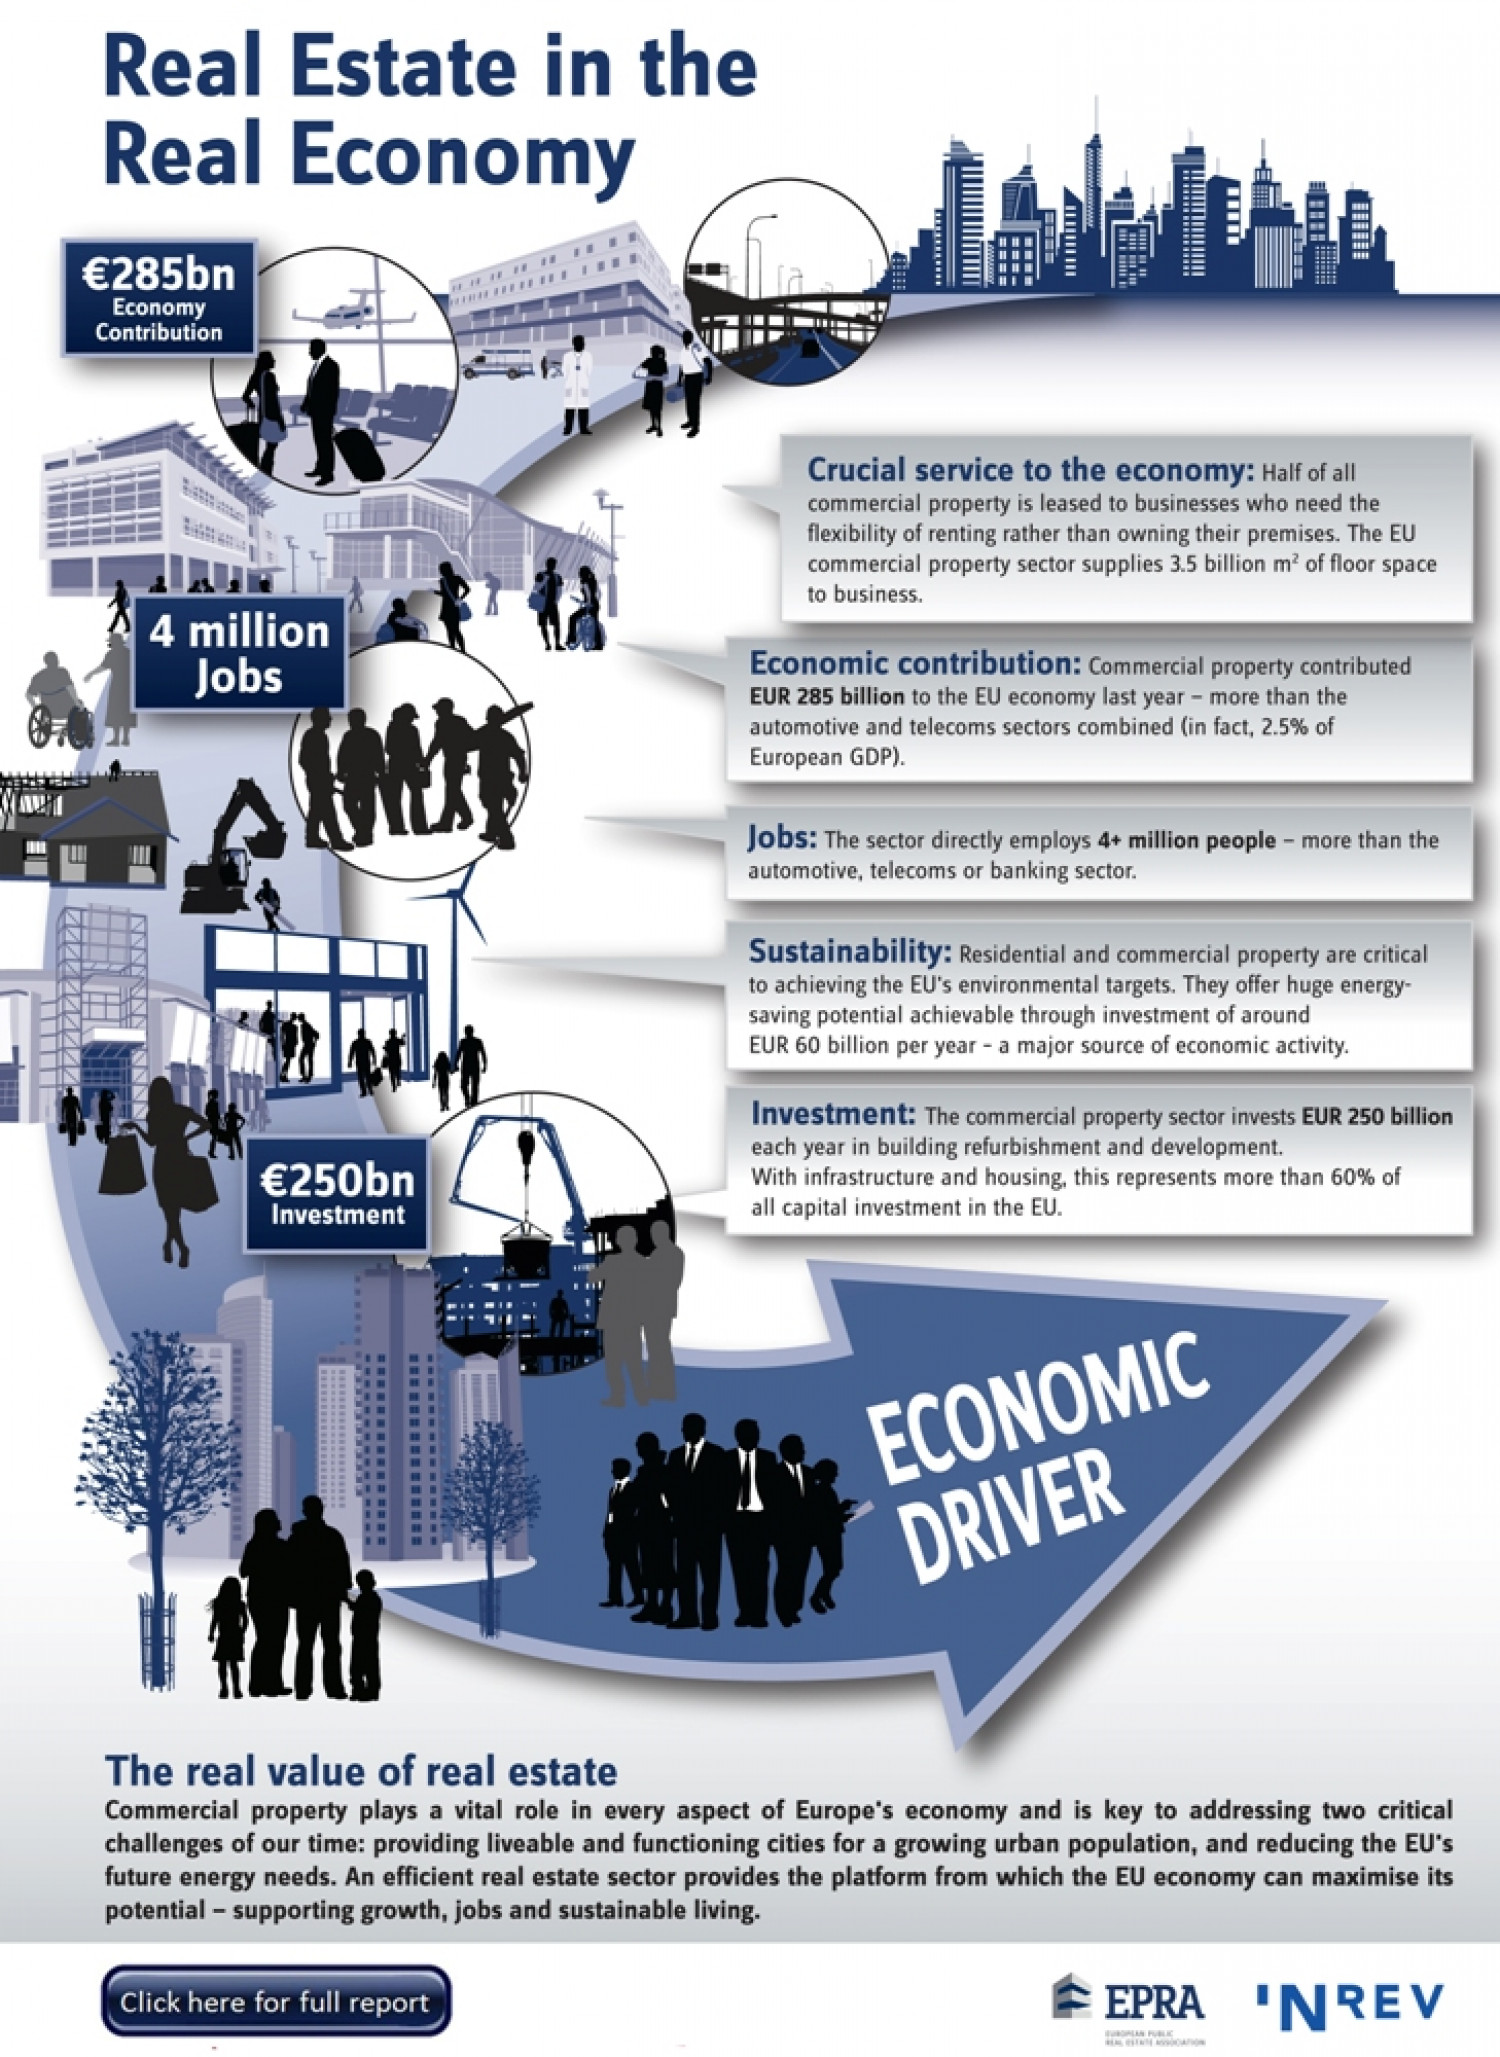 Real estate in the real economy Infographic